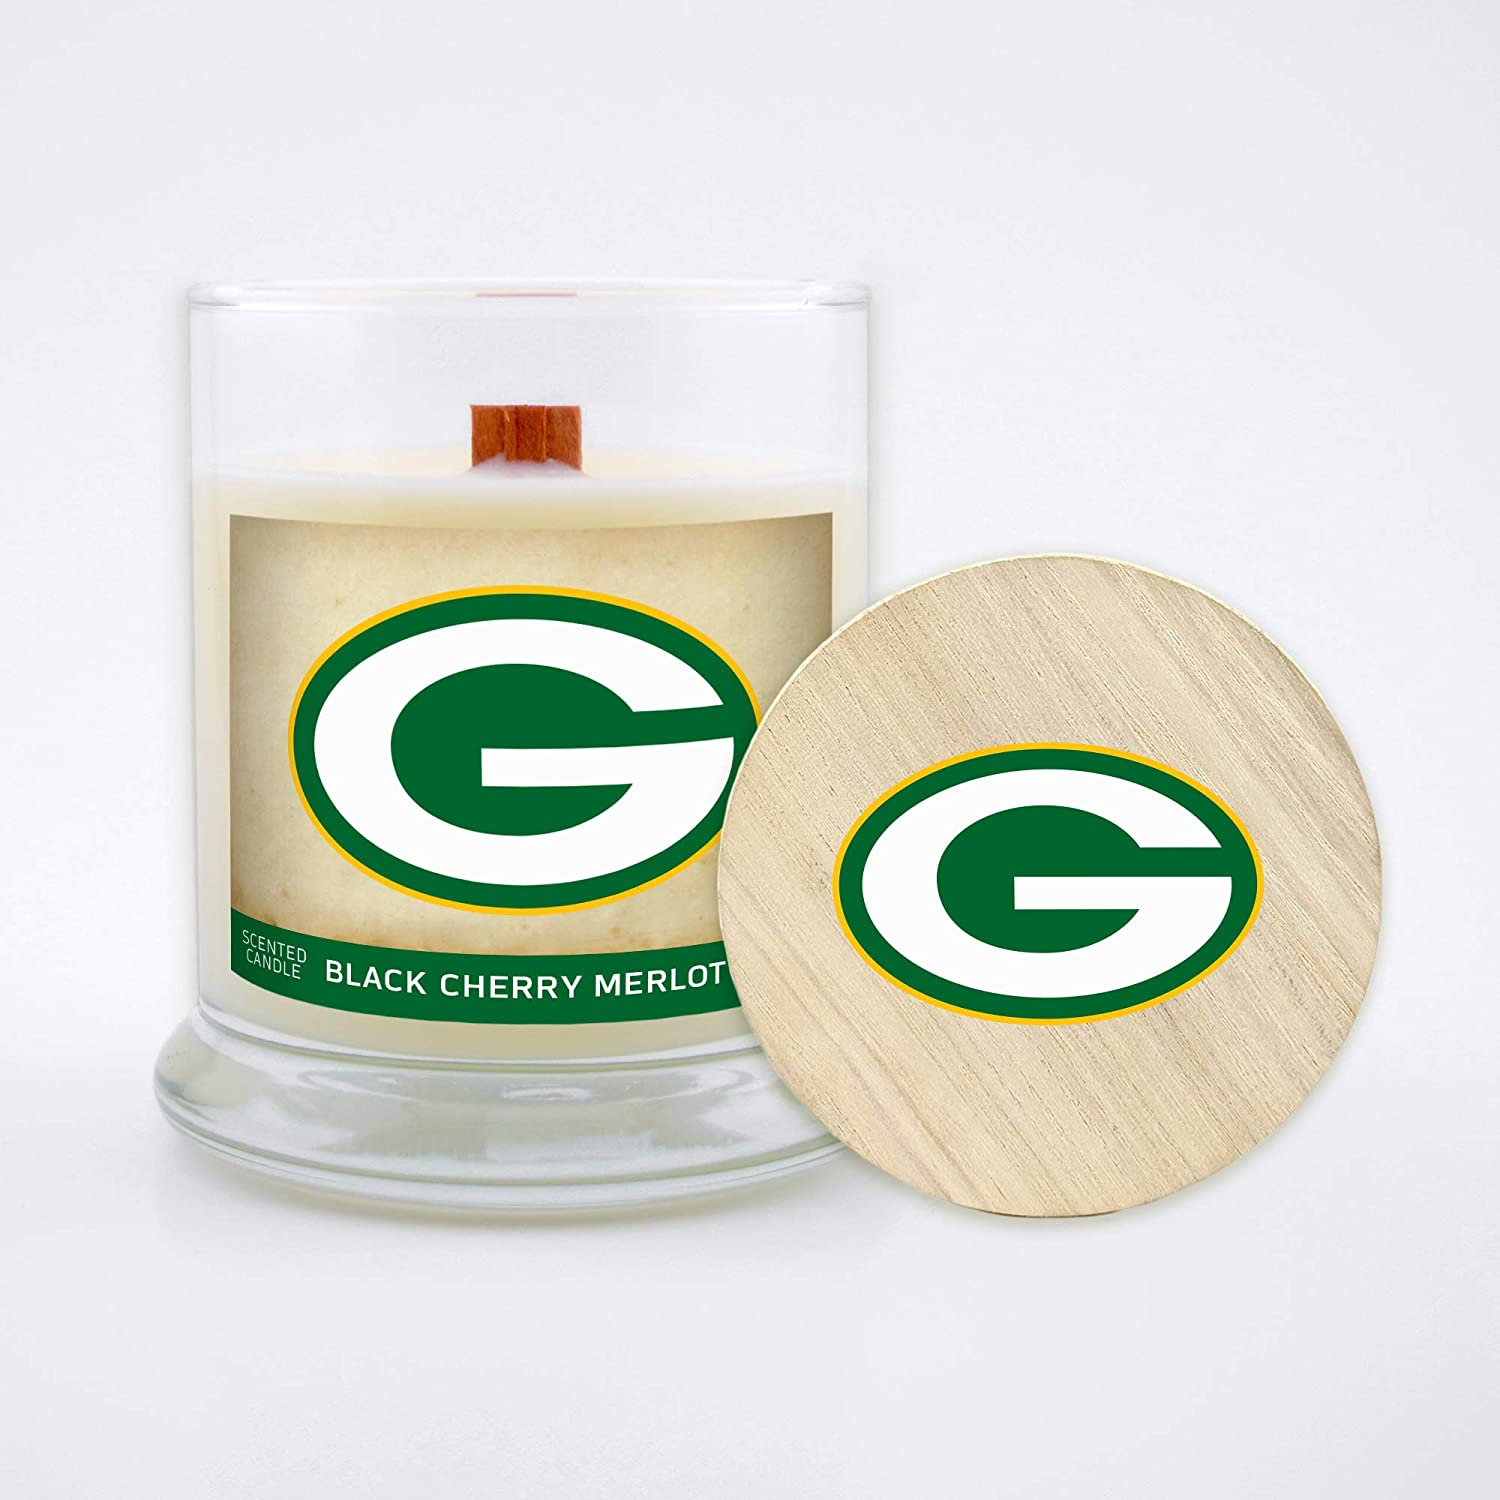 Worthy Promo NFL Green Bay Packers Gifts 8oz Scented Candle Soy Wax w//Wood Wick and Lid Black Cherry Merlot